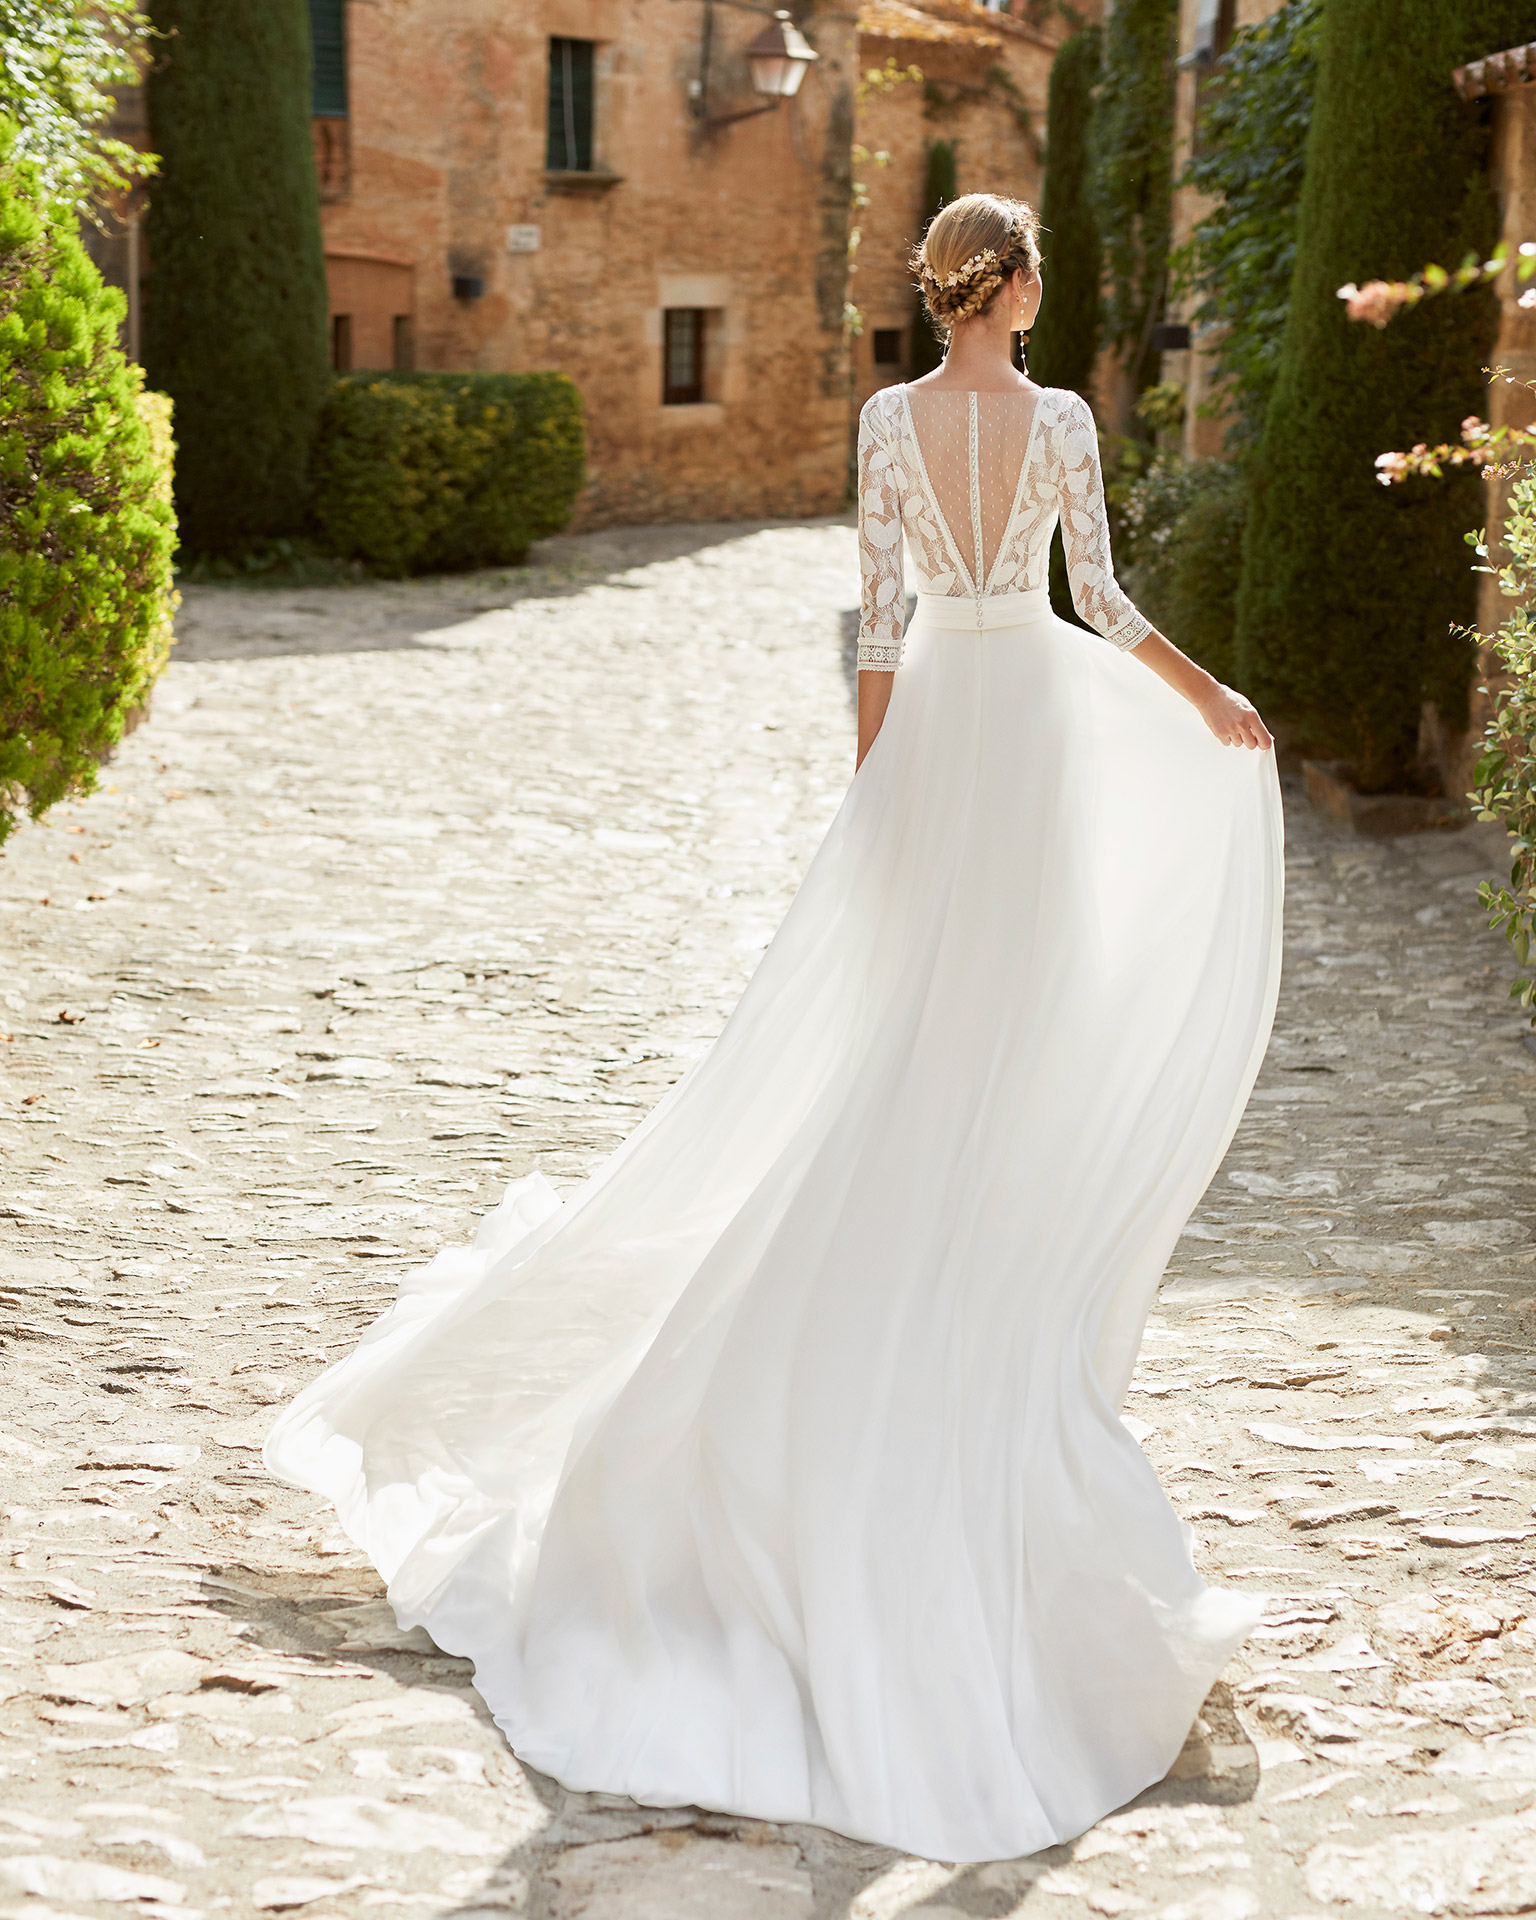 Romantic ballgown-style wedding dress with a lace bodice; with a V-neckline, a closed back with dot tulle and pearl buttons, and three-quarter sleeves with lace on the cuffs. Unique Alma Novia model in georgette. 2022 ALMANOVIA Collection.